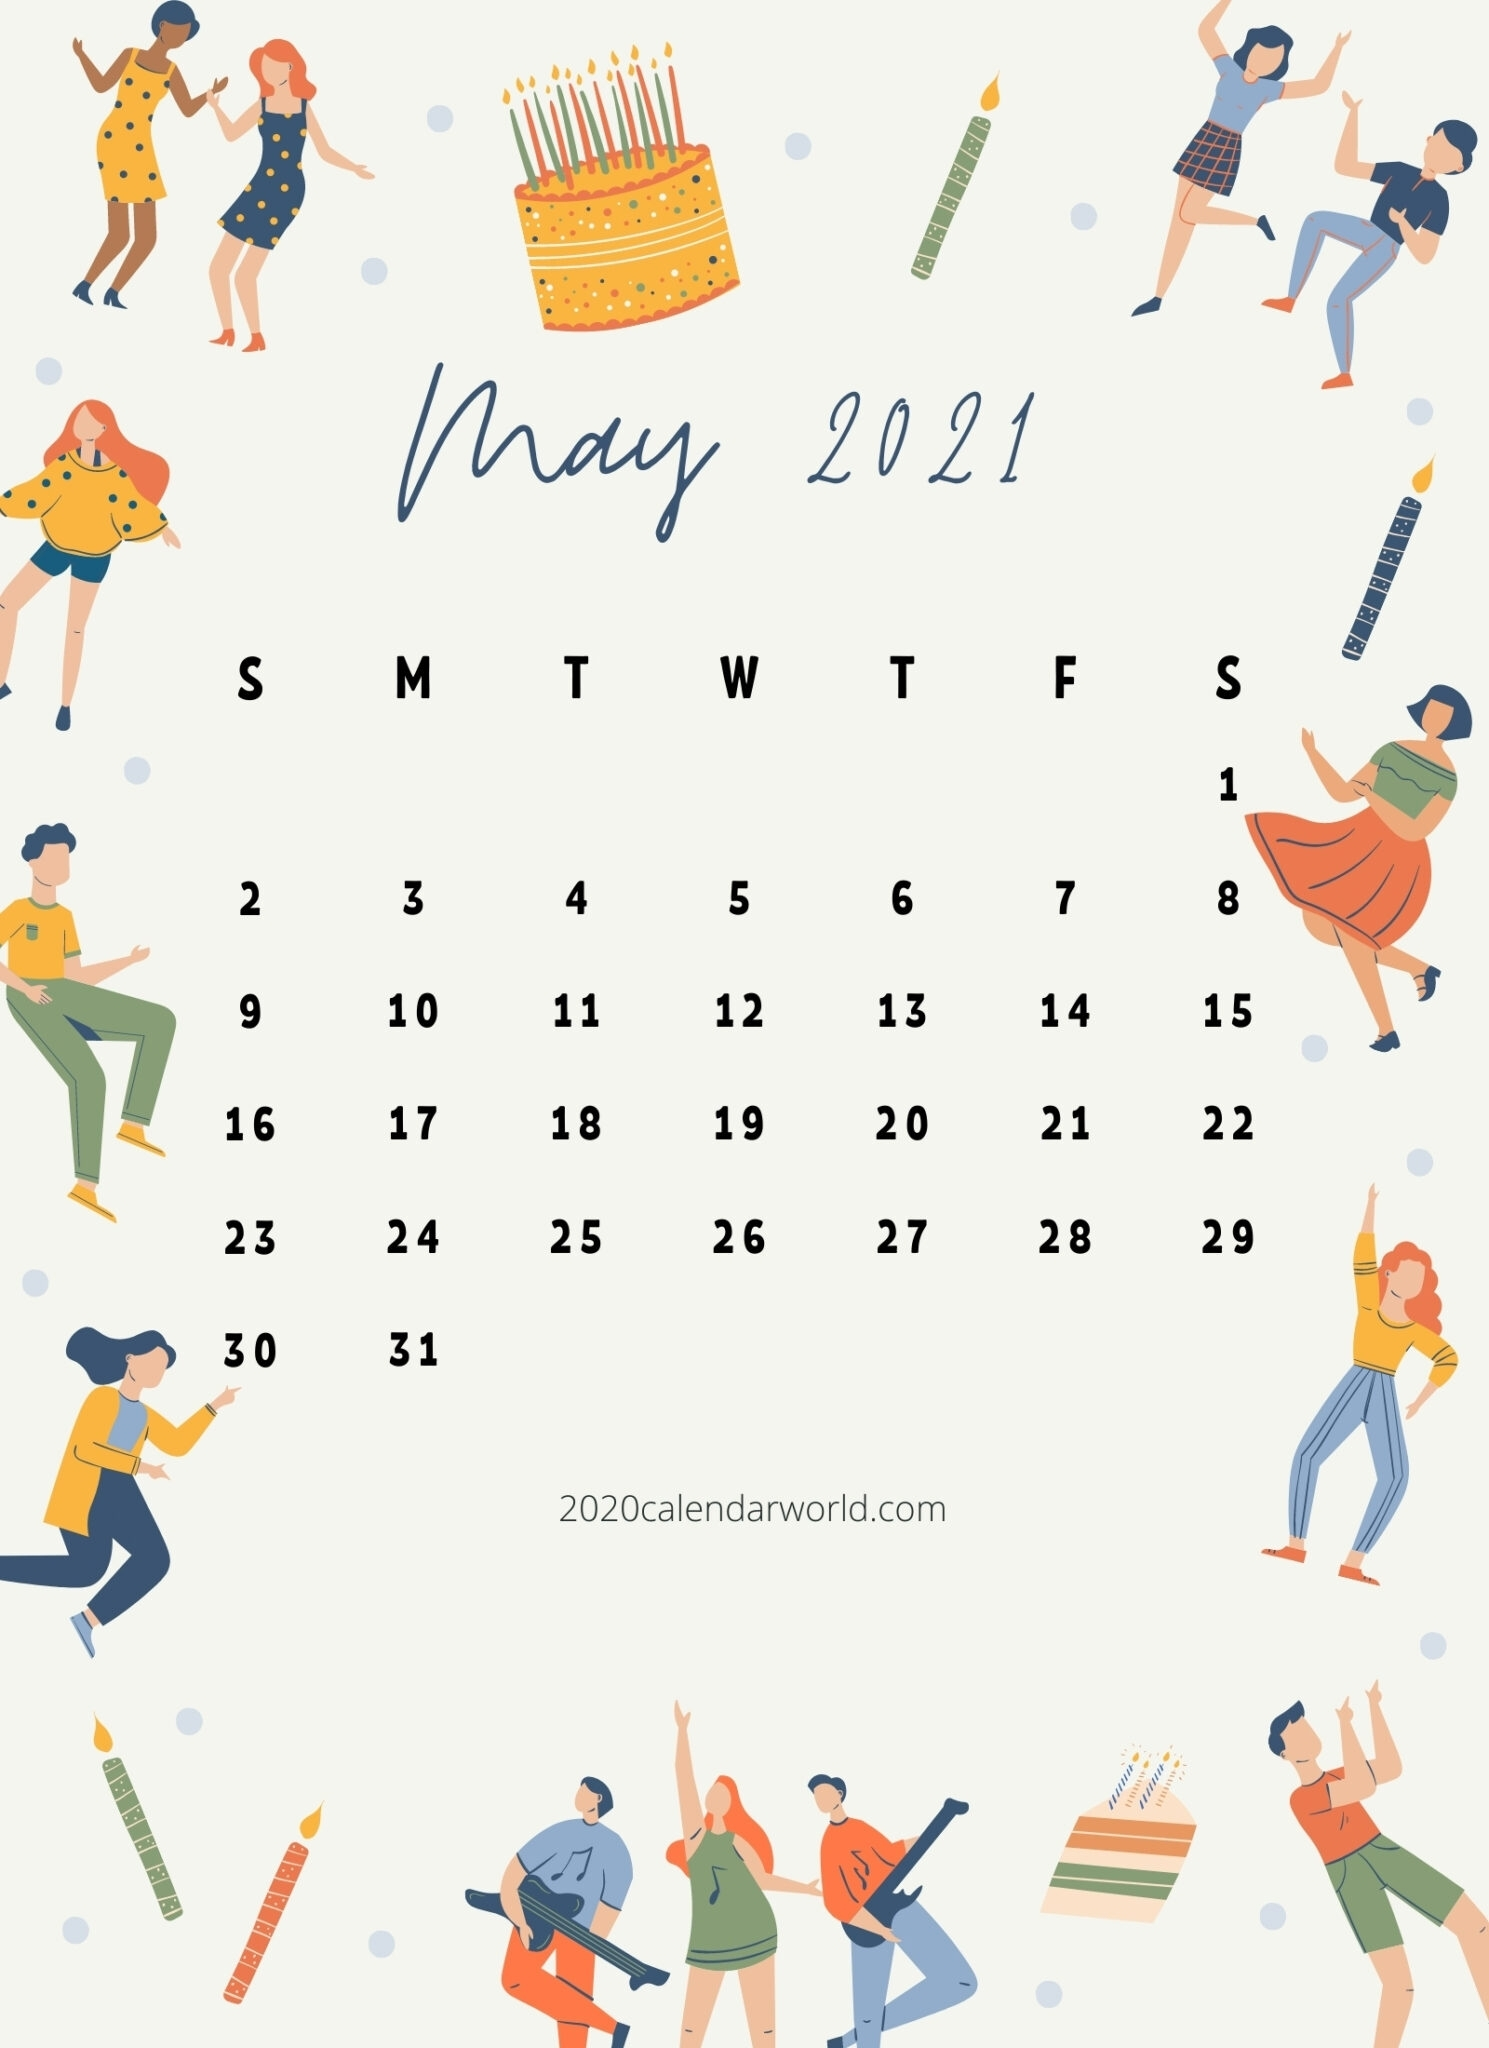 20+ May 2021 Calendar Printable- Best Designs For You